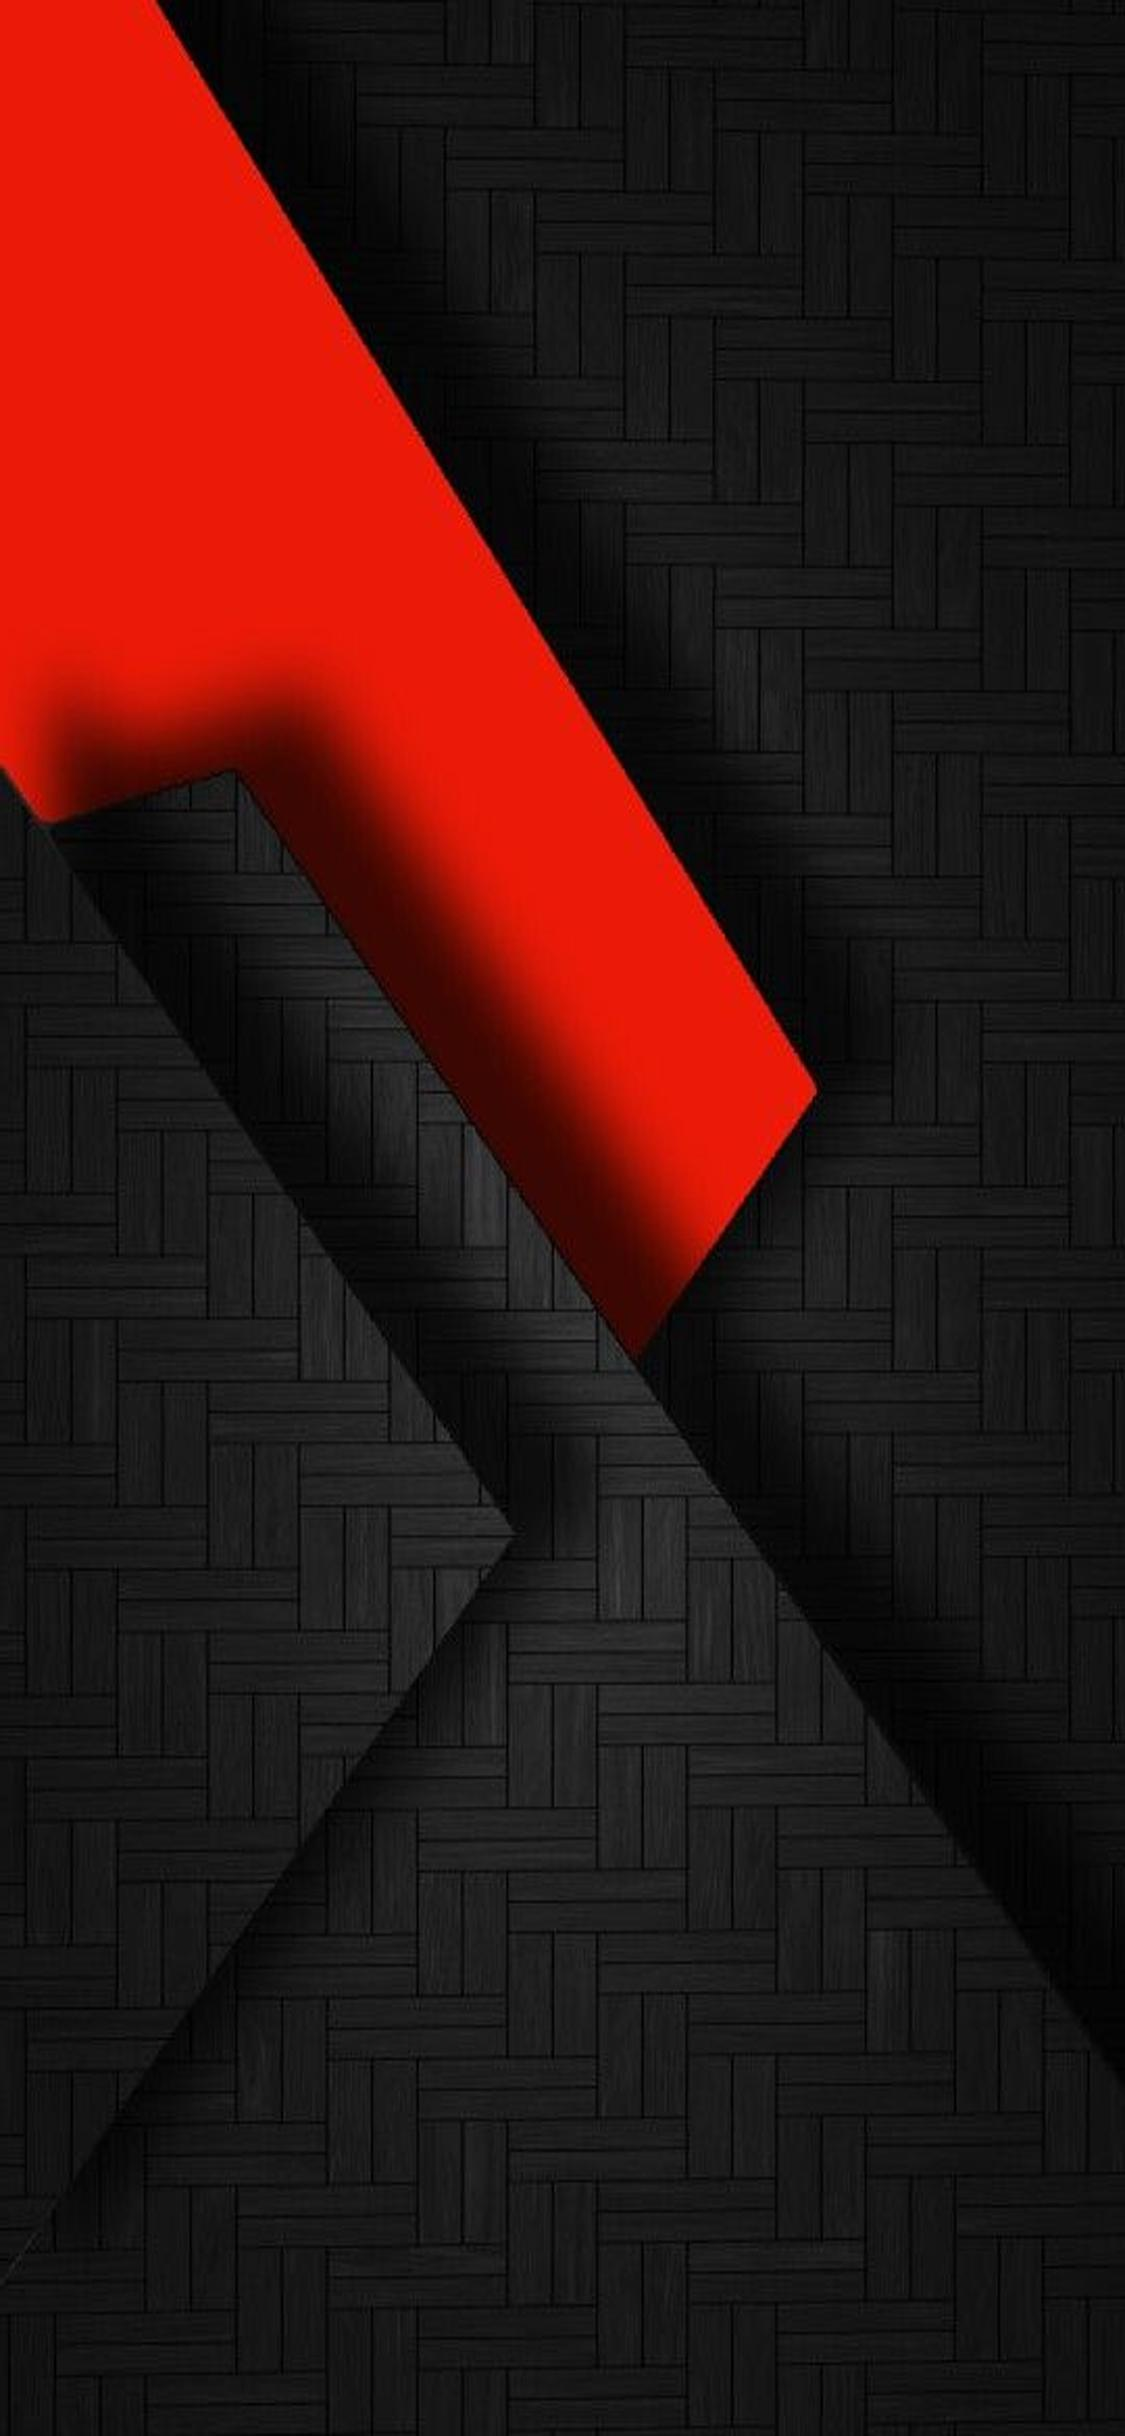 Clean iPhone X Wallpaper for anyone who likes black and red    iphone Clean iPhone X Wallpaper for anyone who likes black and red